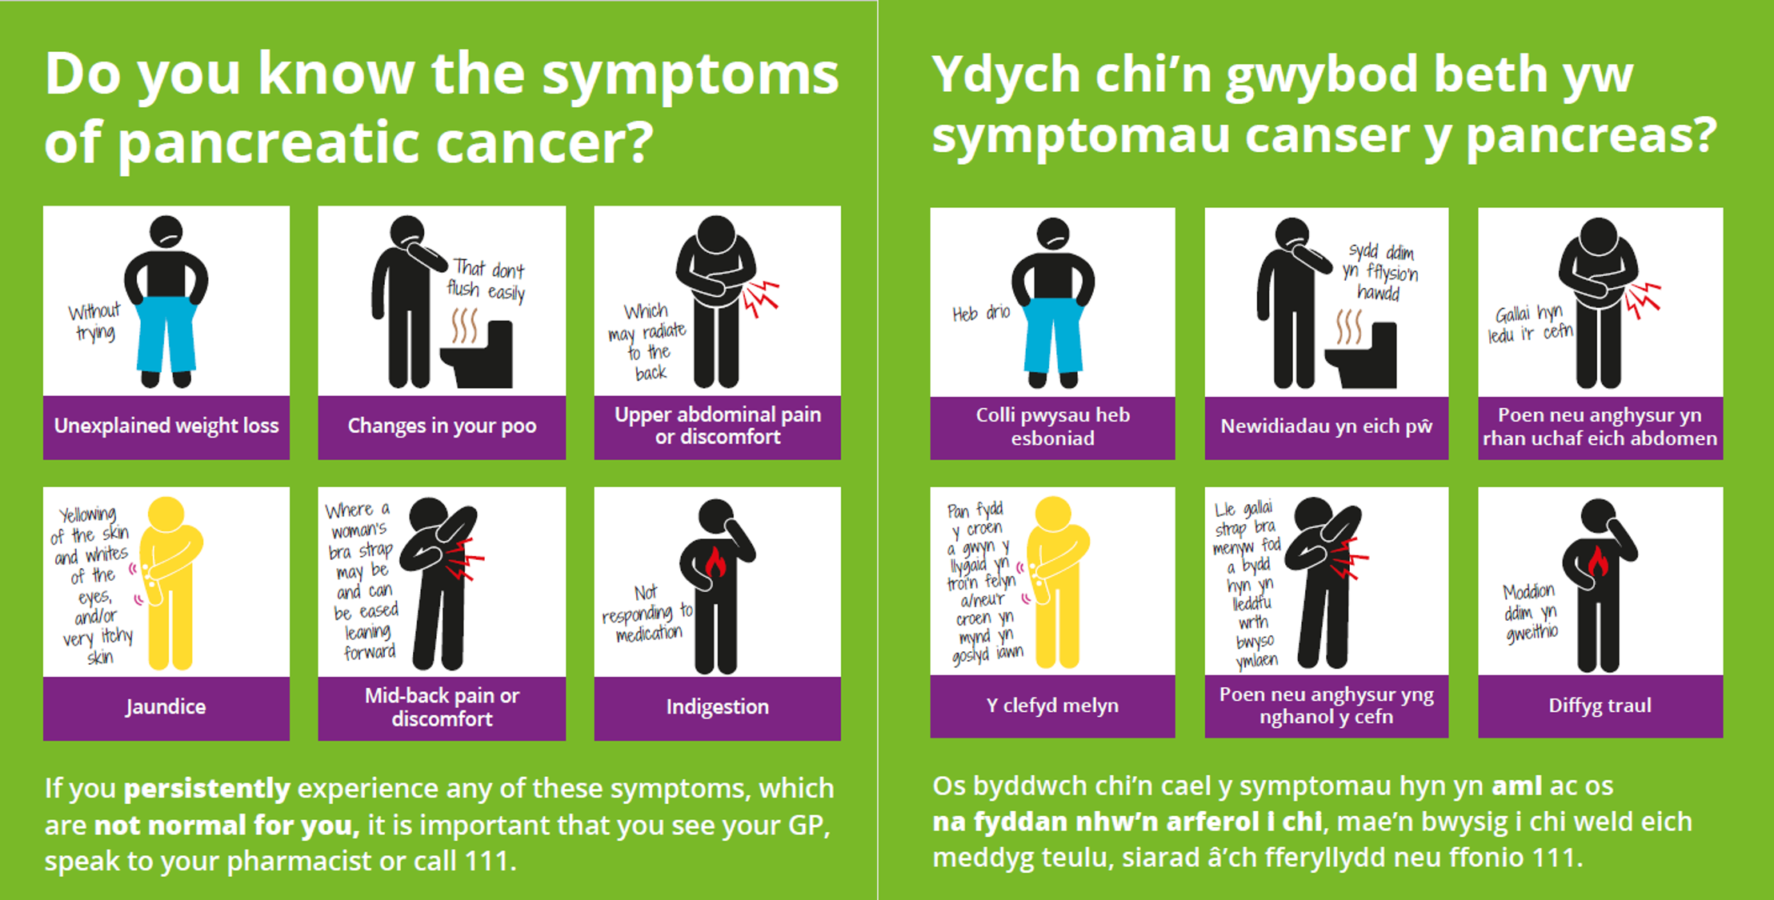 A poster showing the 6 common symptoms of pancreatic cancer include: Unexplained weight loss, changes in the way you poo, upper abdominal pain or discomfort, jaundice, Mid-back pain or discomfort and indigestion.